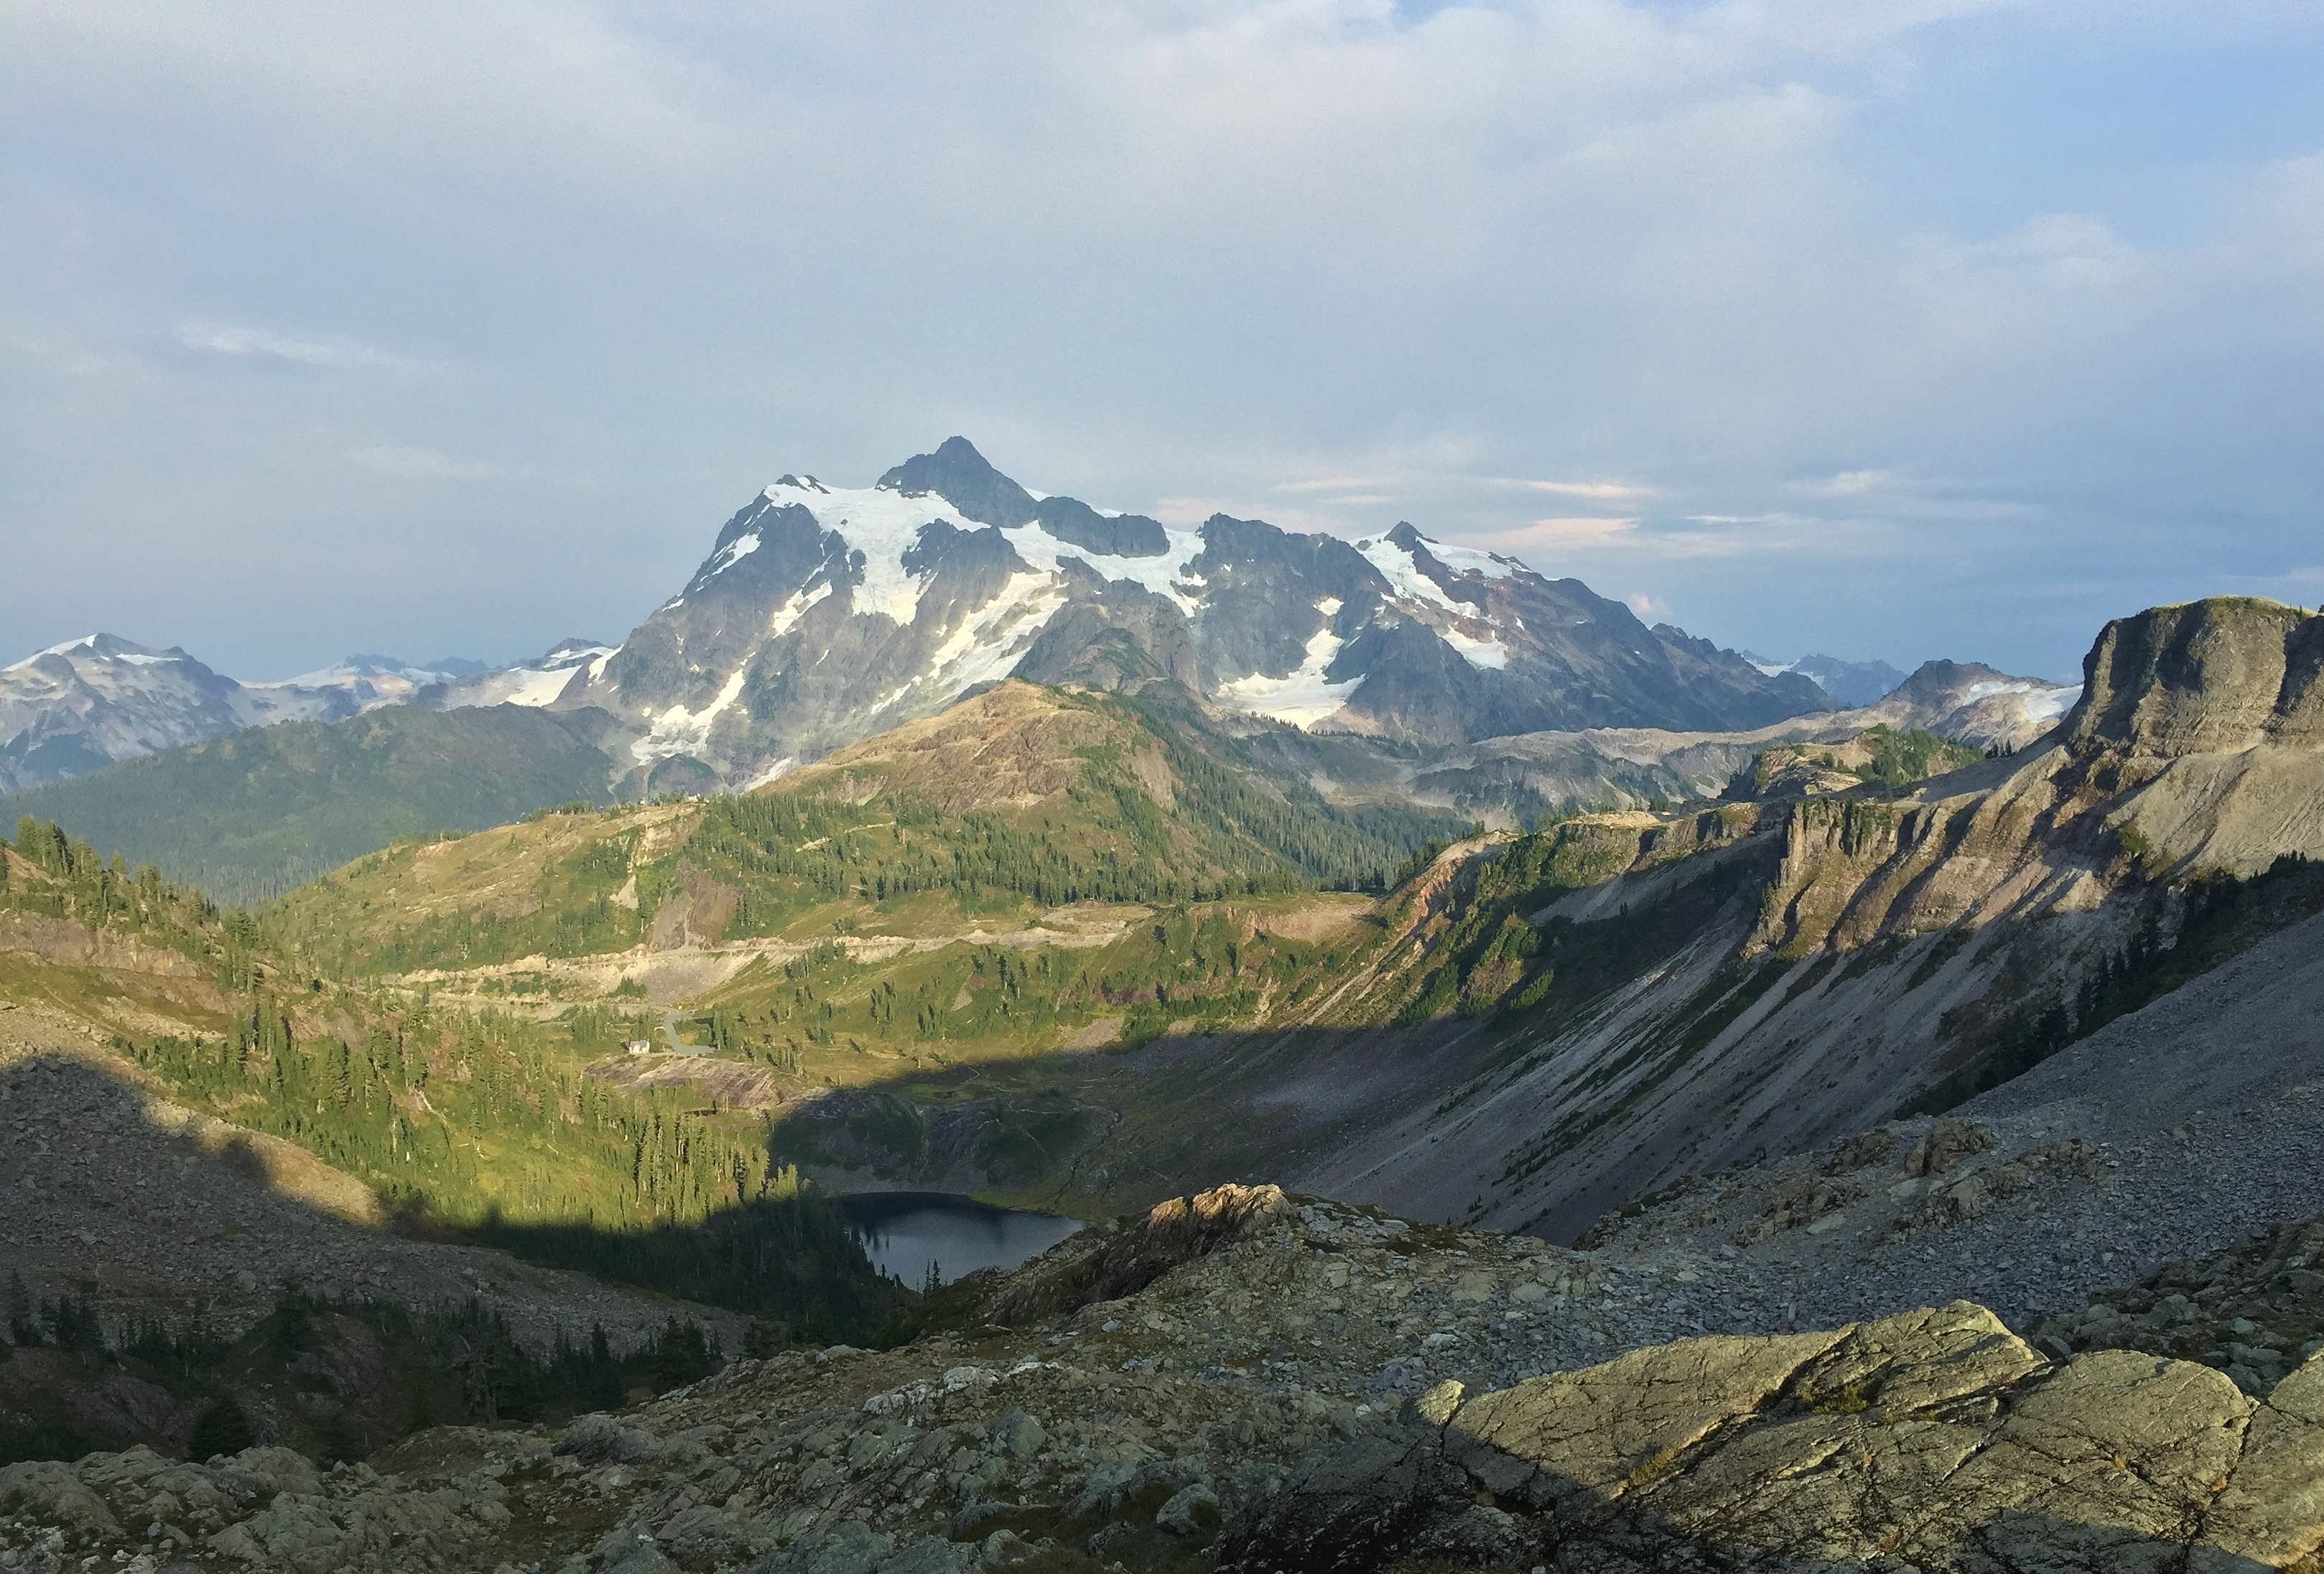 In the view from the Herman Saddle, Mount Shuksan basks in day's falling light. Chain Lakes Loop, August 10, 2015.